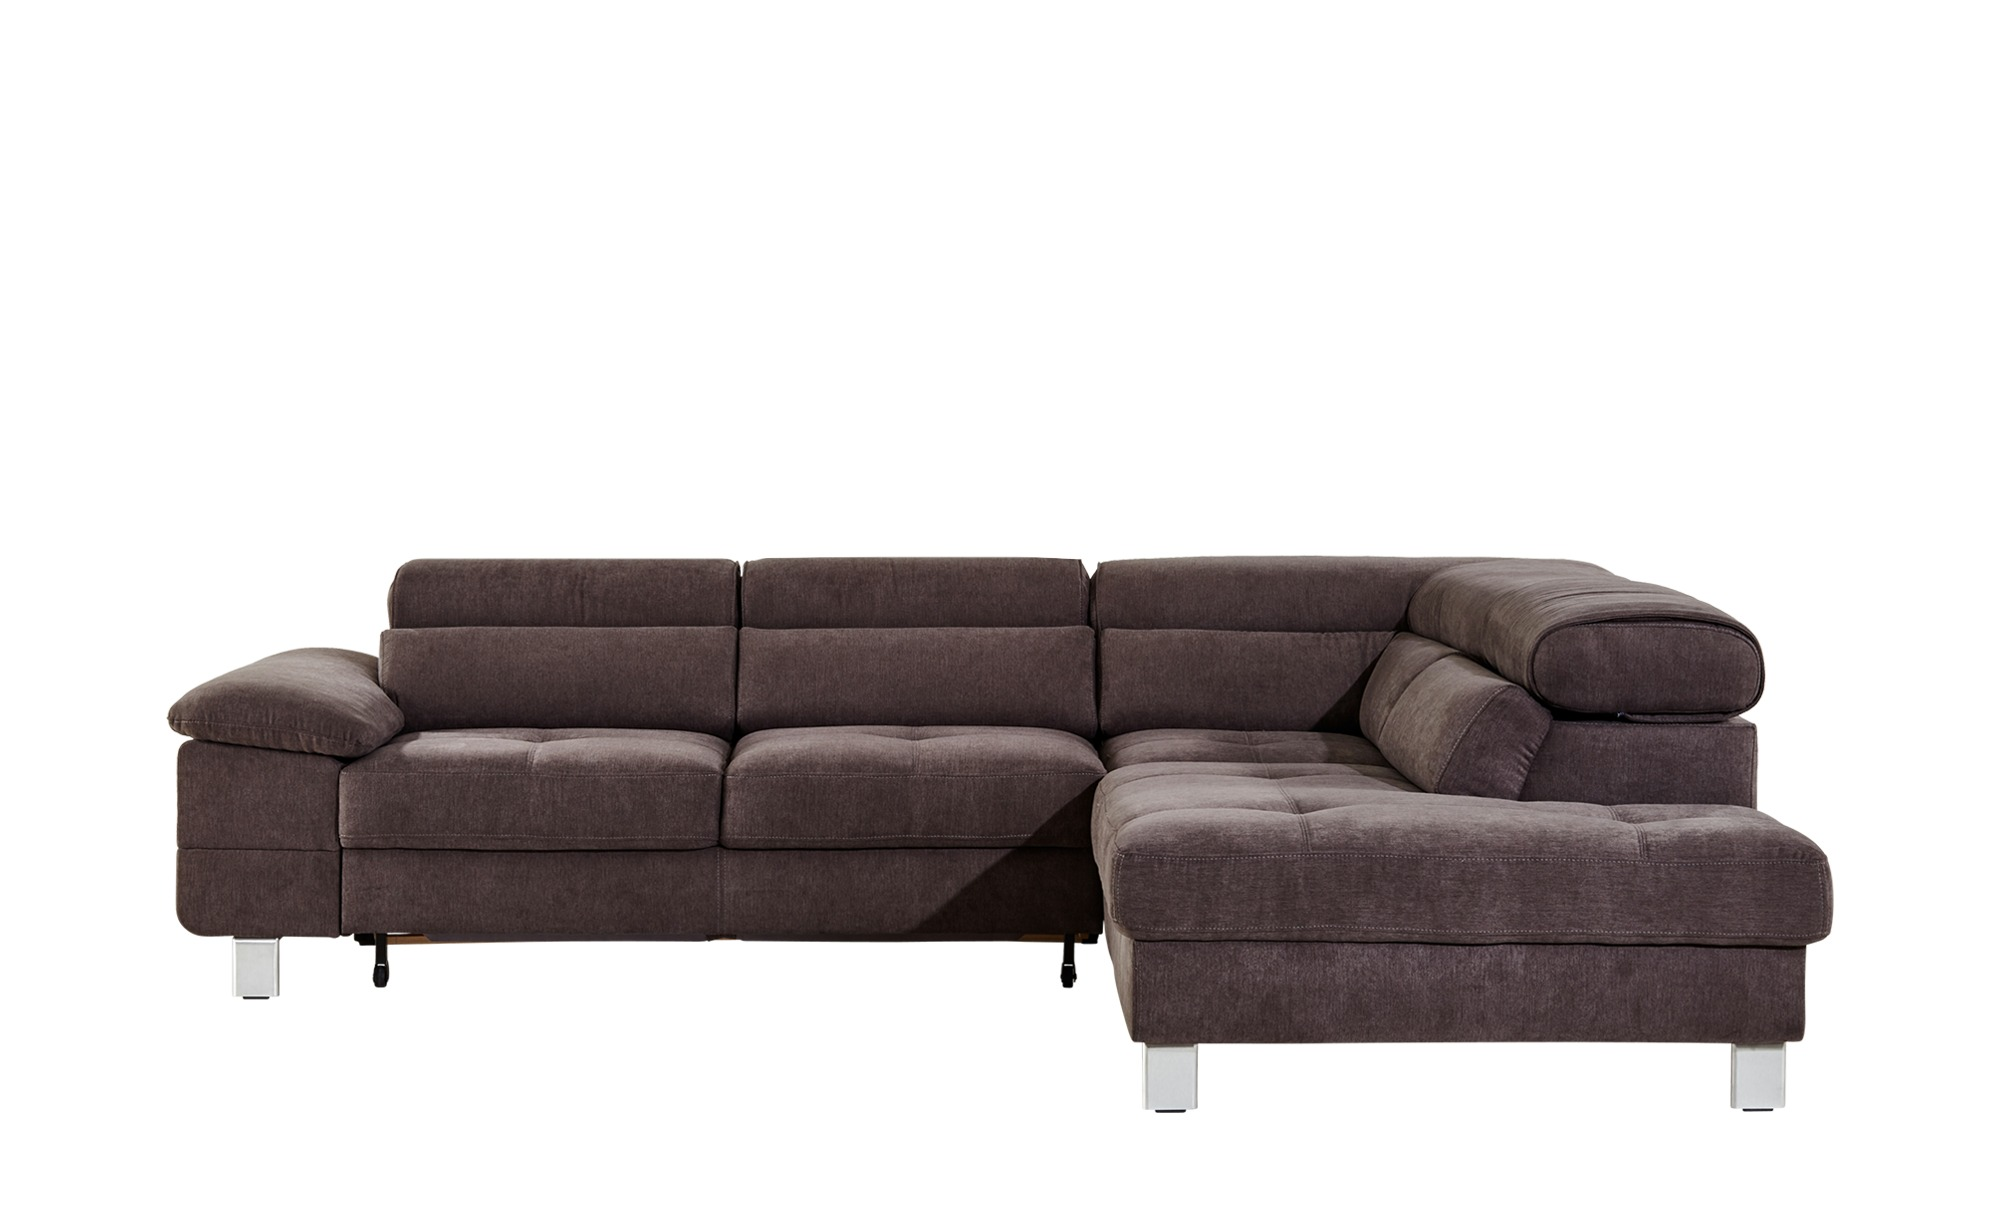 switch ecksofa kunstleder costa breite h he 75 cm braun. Black Bedroom Furniture Sets. Home Design Ideas